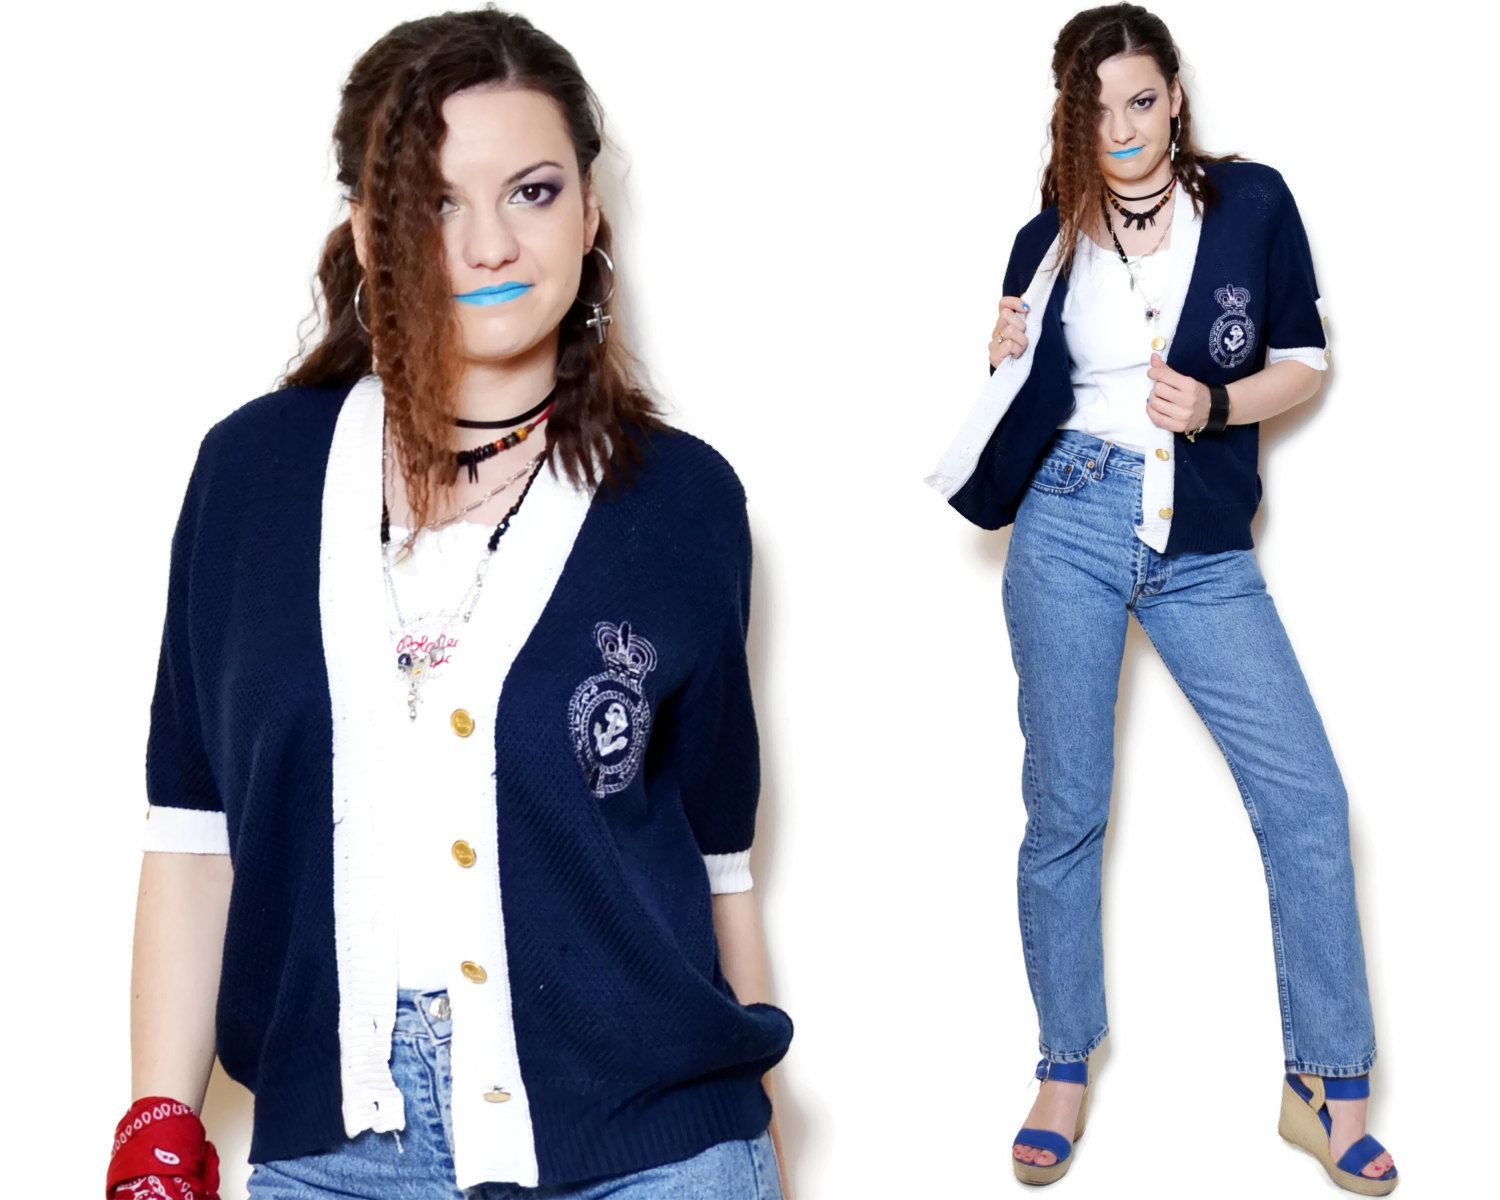 e21c78249b Vintage dark blue embroidered nautical cardigan sweater made by Renato  Balestra. The swater is stretchy